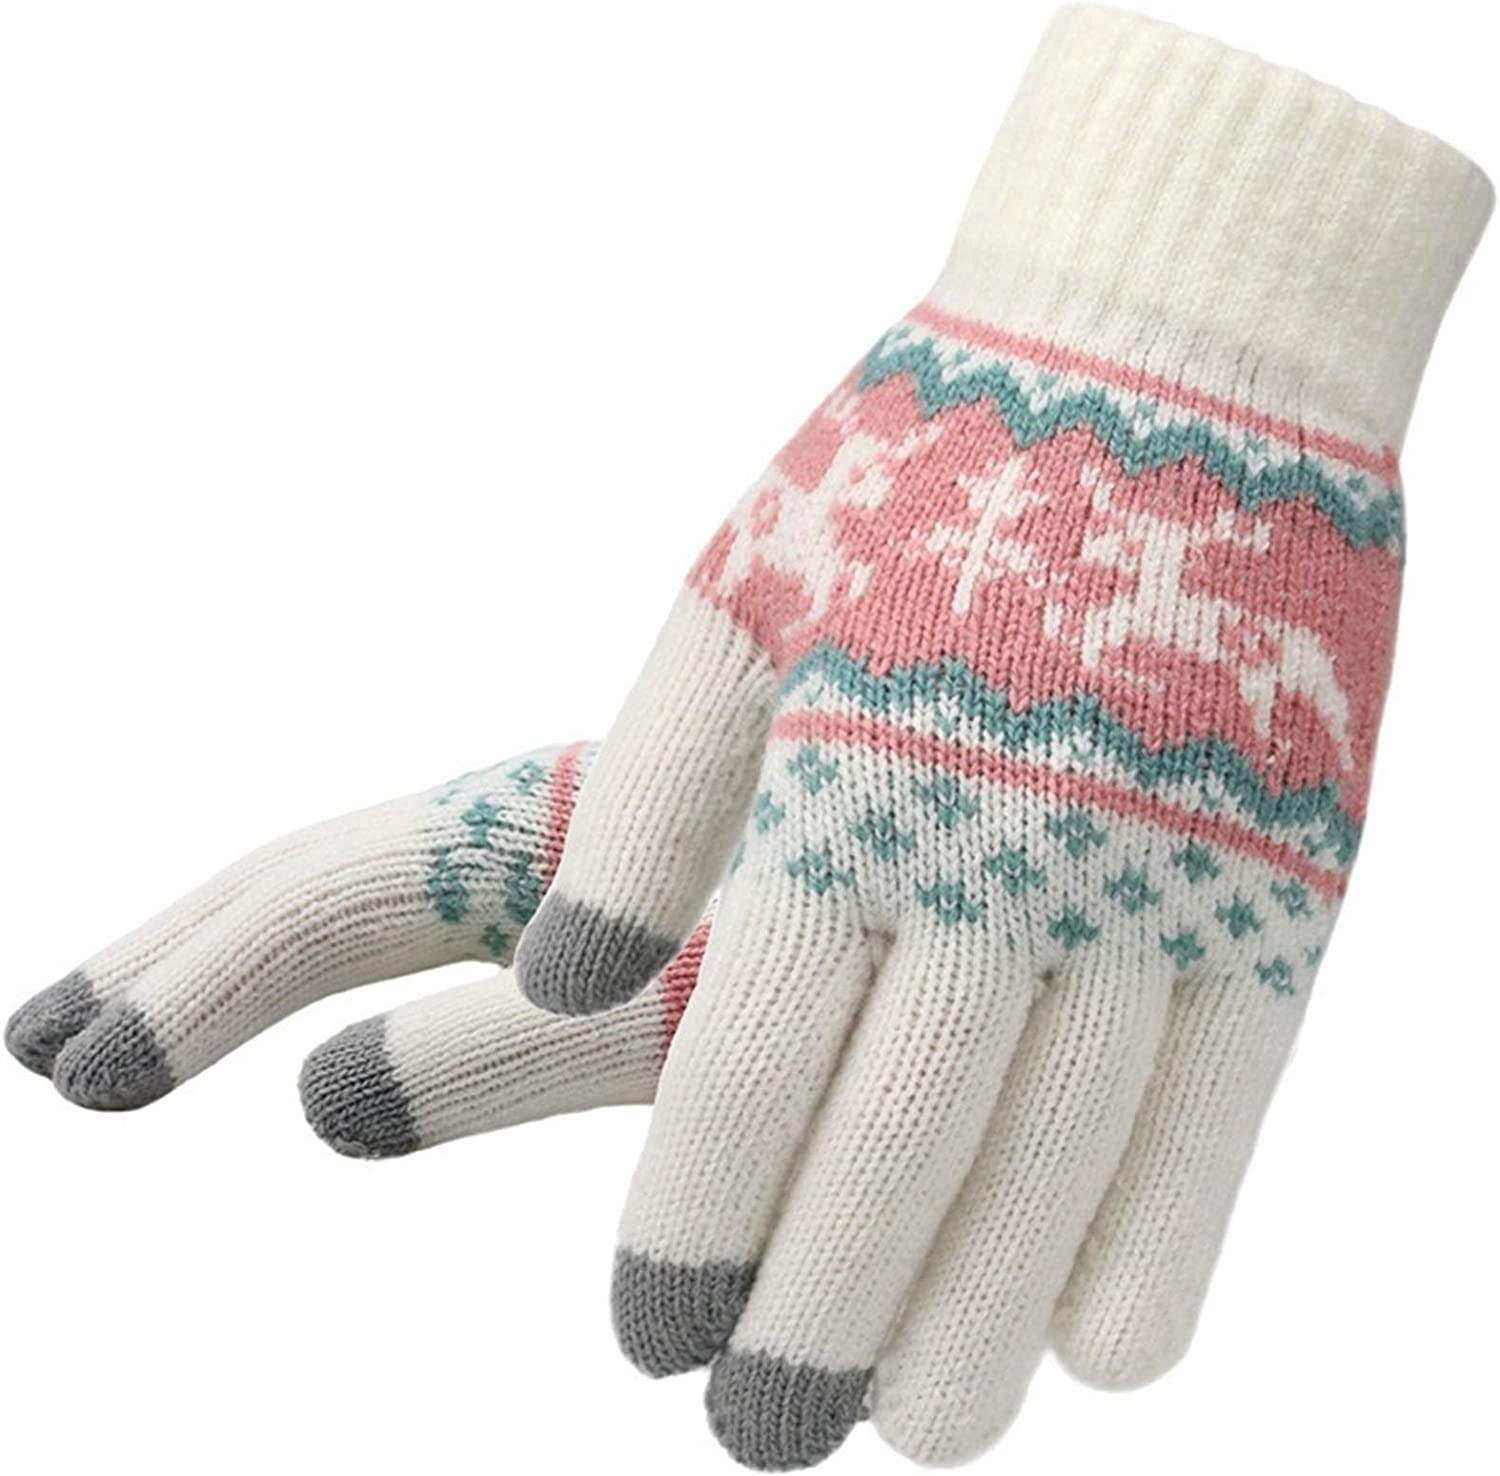 A-YSJ Women's Knitted Gloves Winter Full Finger Warmth Soft Touch Screen Knitted Gloves (Color : White, Gloves Size : One Size)